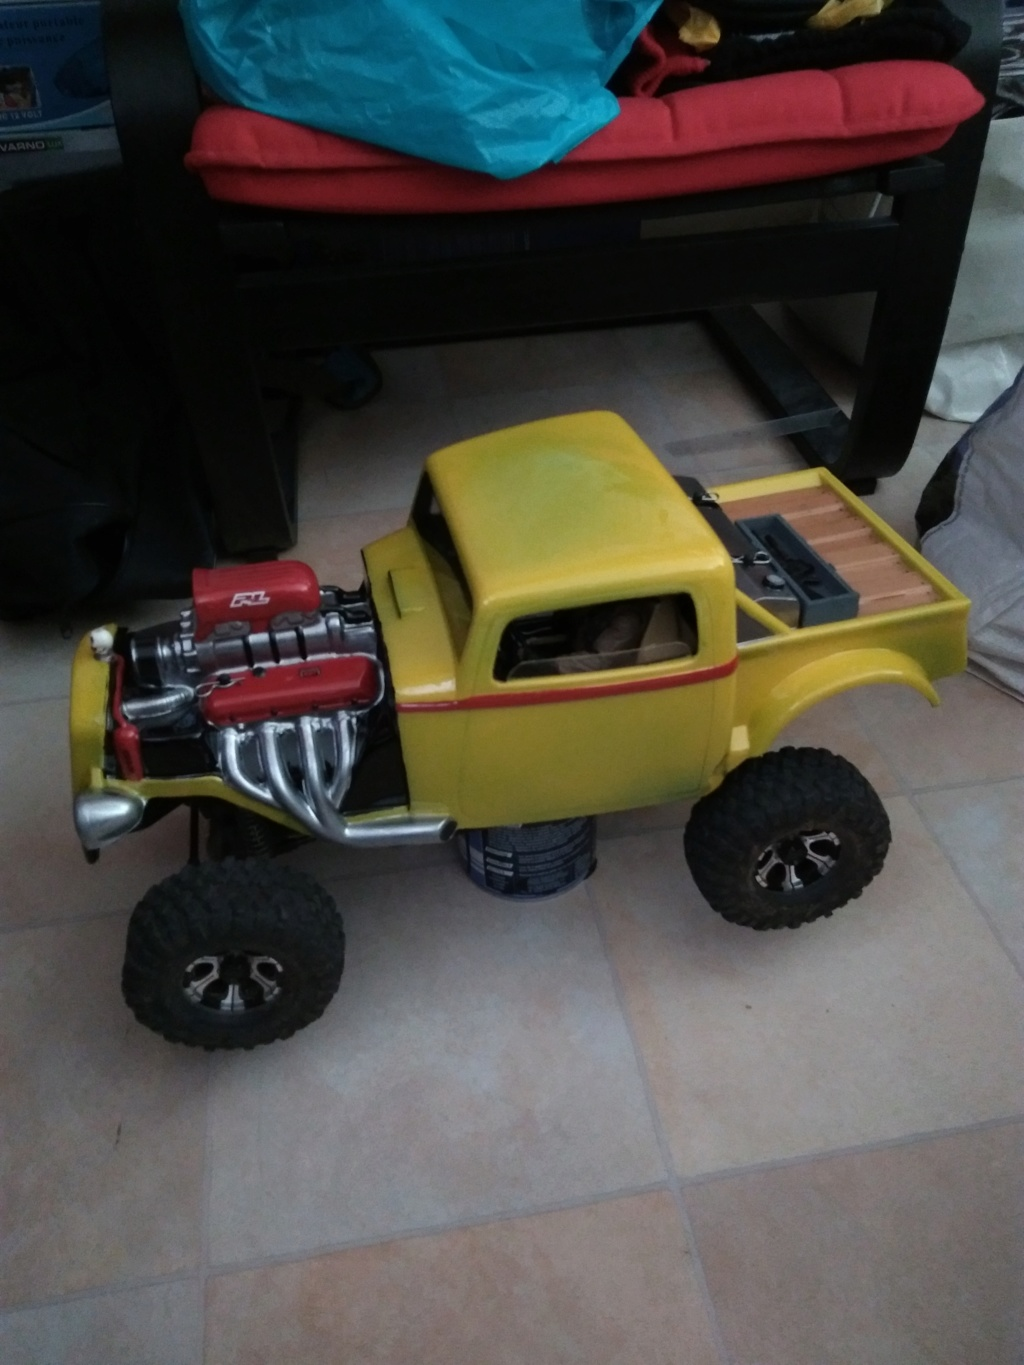 Carrosserie Hot Rod sur Chassis TRX-4 by Ruru - Page 2 Img_2012